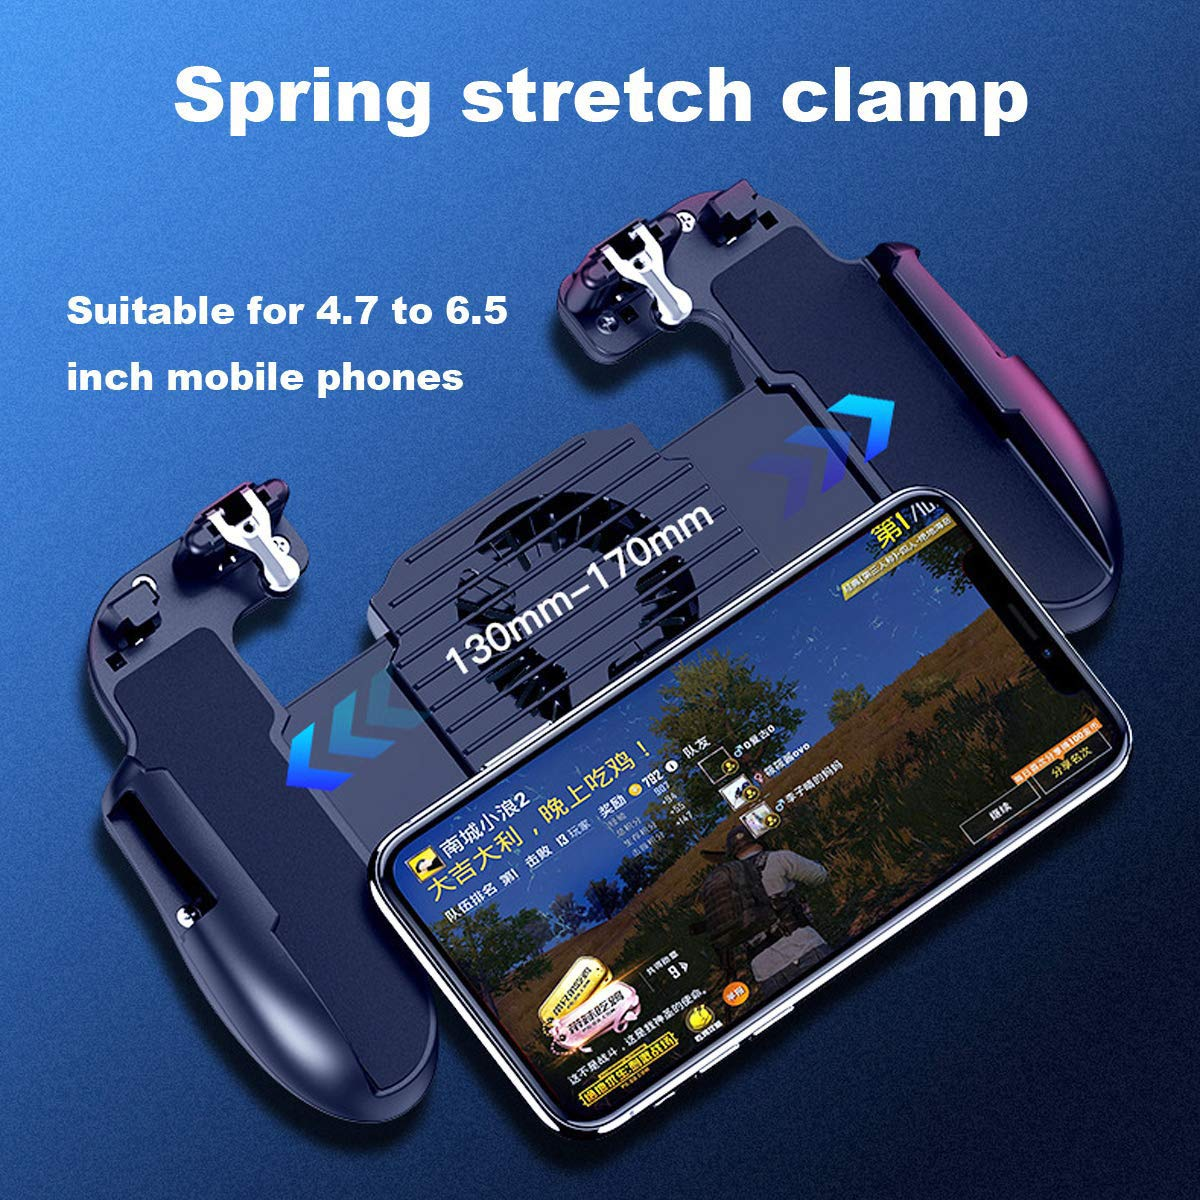 YZmoffer Portable Game Controller Mobile Game Trigger Cooling Fan Mobile Joystick Power Charger Gamepad, L1R1 Aim and Shoot Trigger Joystick Upgraded Version for iOS Android 4.5-6.5inch